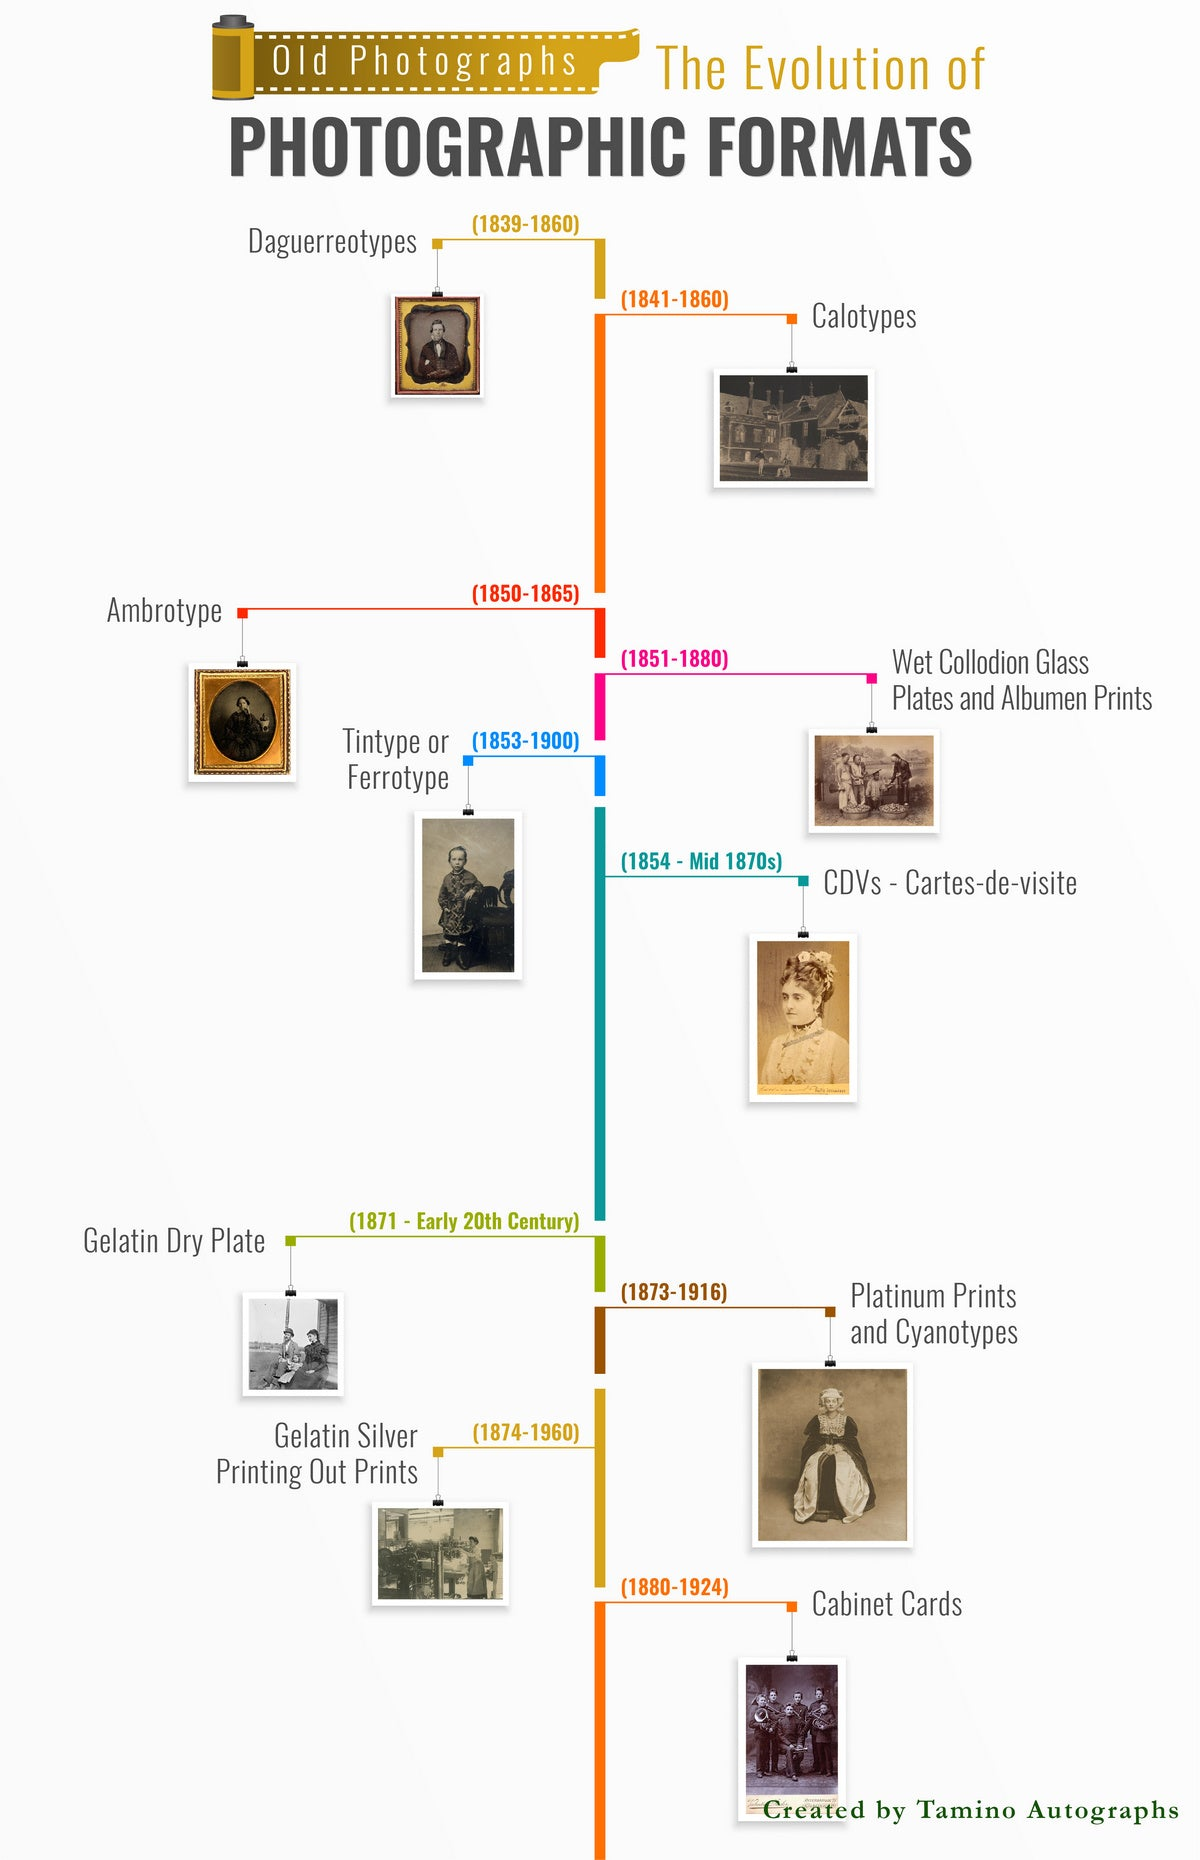 Old Photographs: The Evolution of Photographic Formats